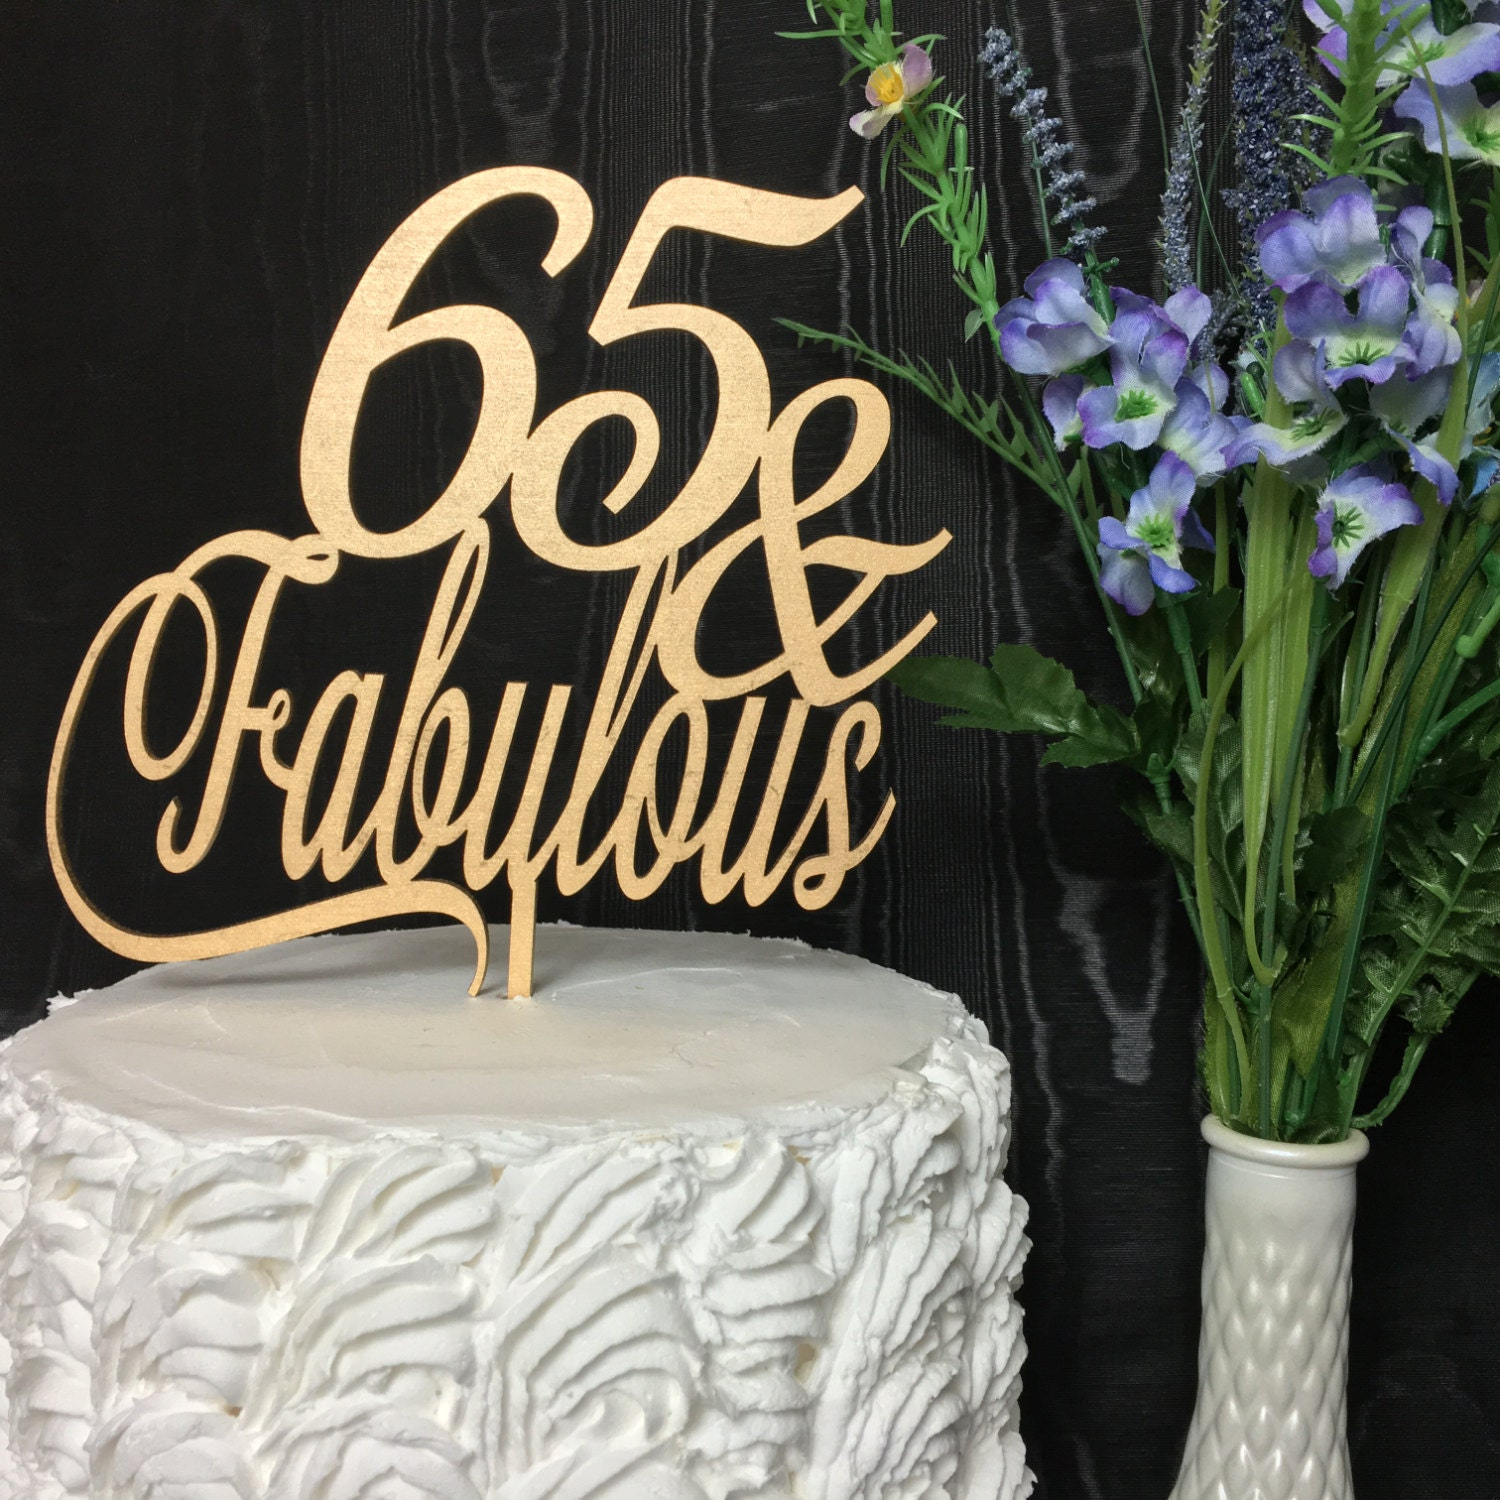 65th Birthday Cake Topper 65 Fabulous Cake Topper Gold Cake